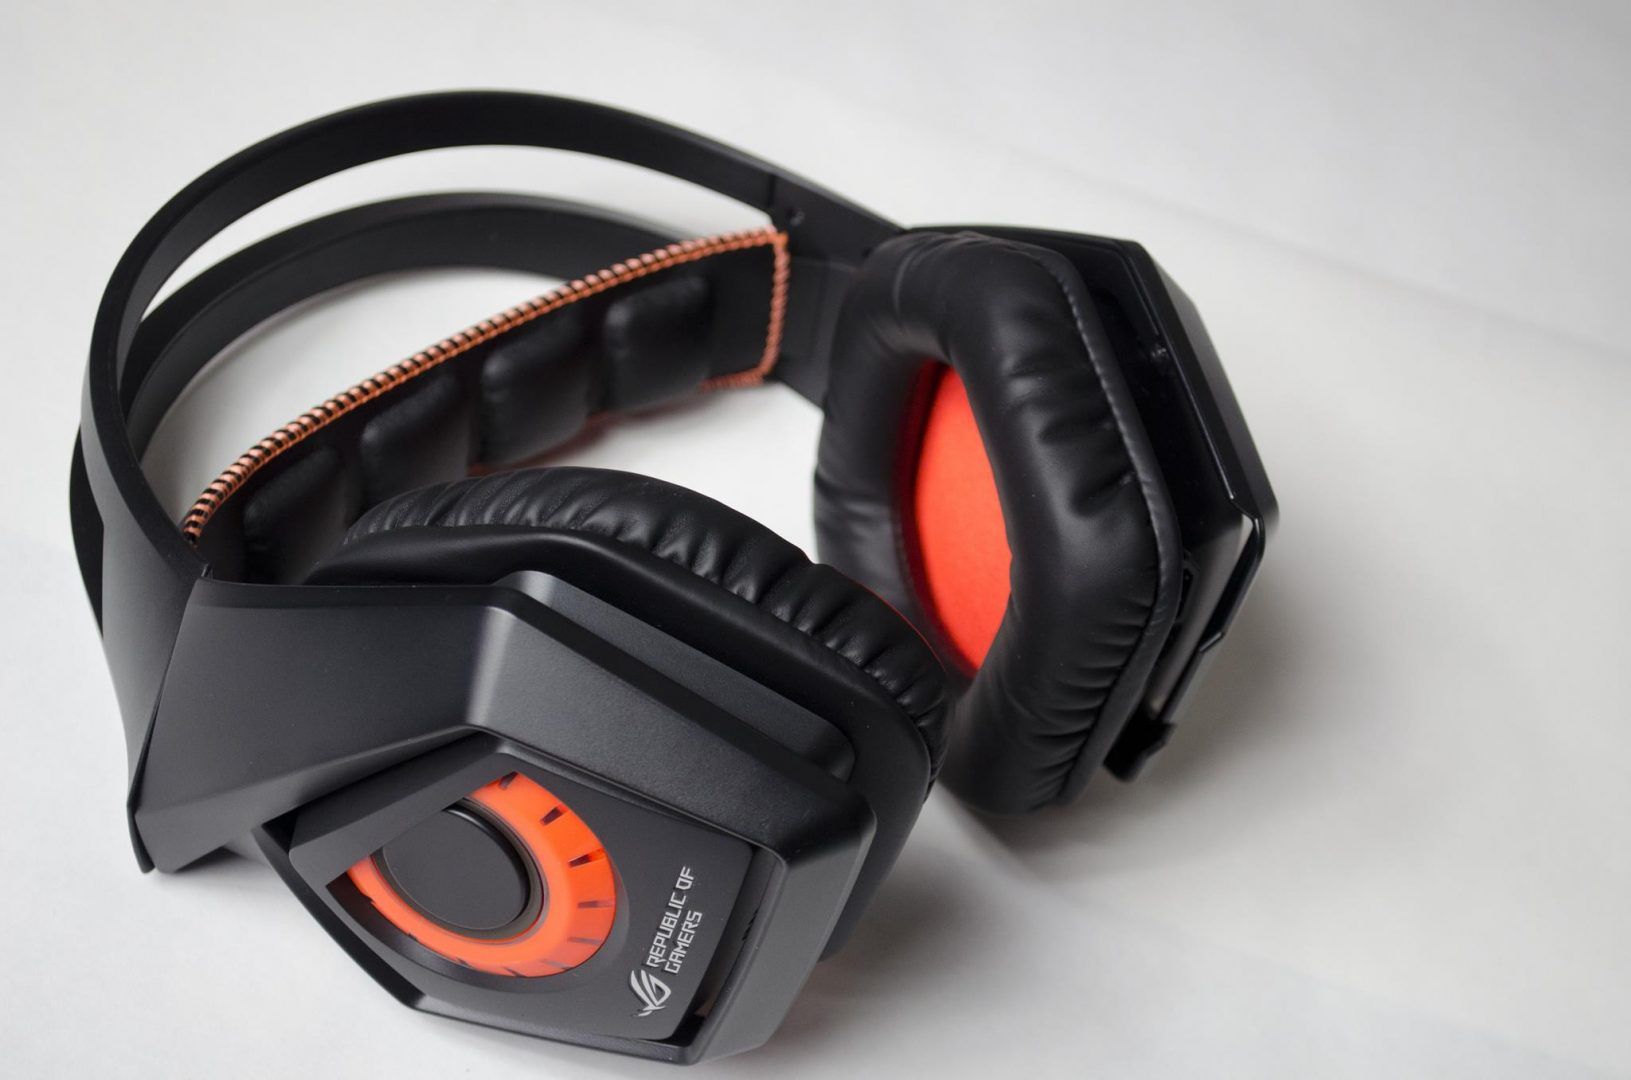 ASUS ROG Strix Wireless Headset Review